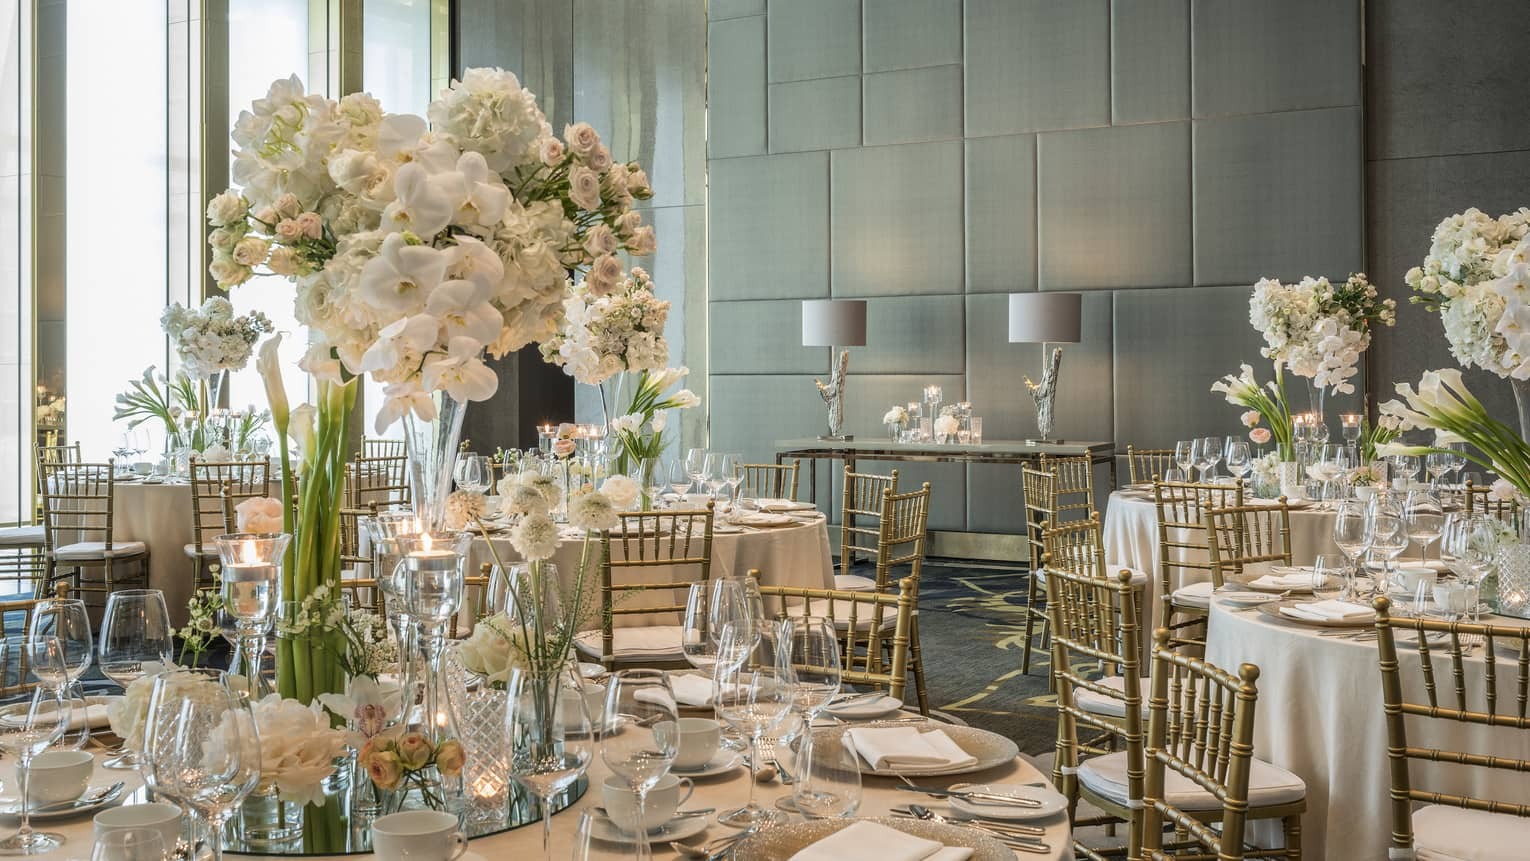 The tables of a wedding reception are set with white tall florals, clear glassware, white plates and silver tableware